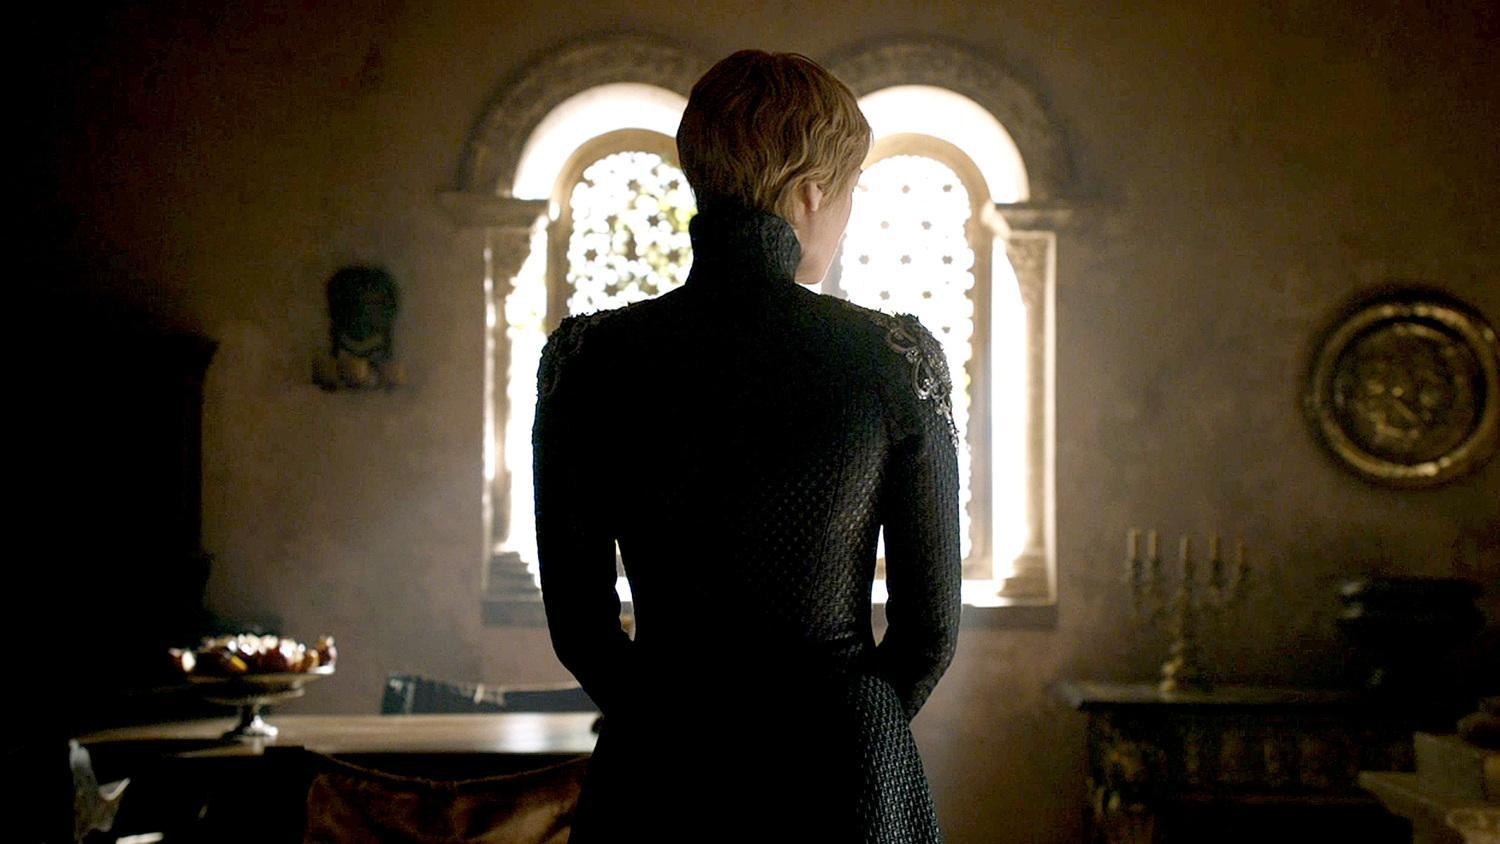 Game of Thrones Season 6 Finale Preview: The Winds of Winter